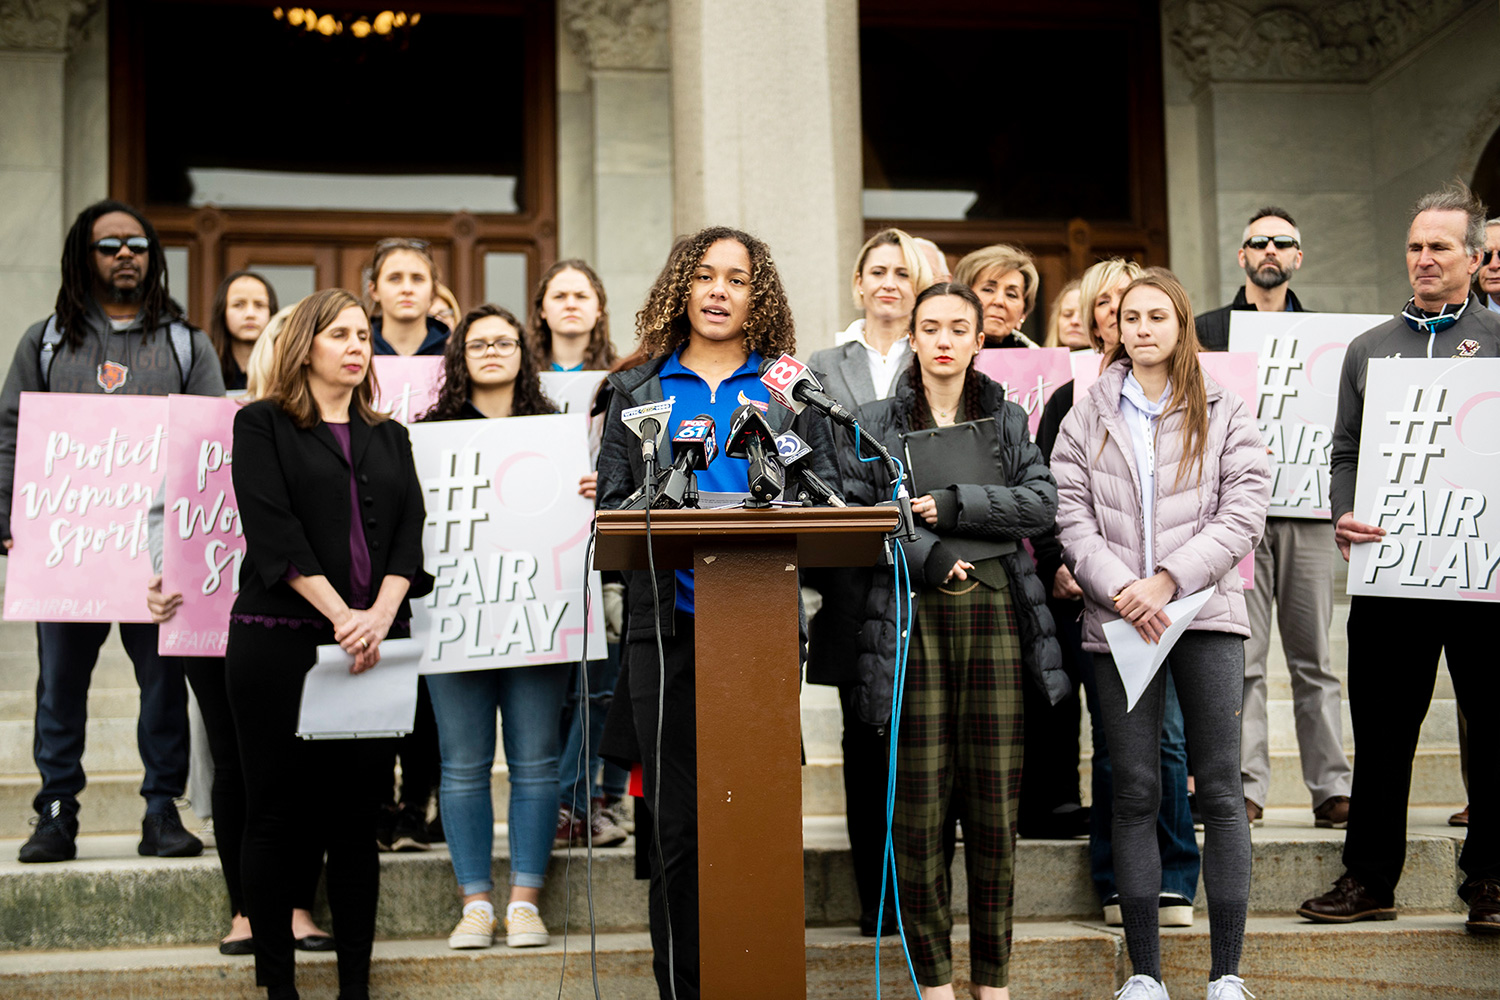 Canton High School senior Chelsea Mitchel speaks during a press conference with Alanna Smith, Danbury High School sophomore, to her left and Selina Soule, Glastonbury High School senior, to her right at the Connecticut State Capitol Wednesday, Feb. 12, 2020, in downtown Hartford, Conn